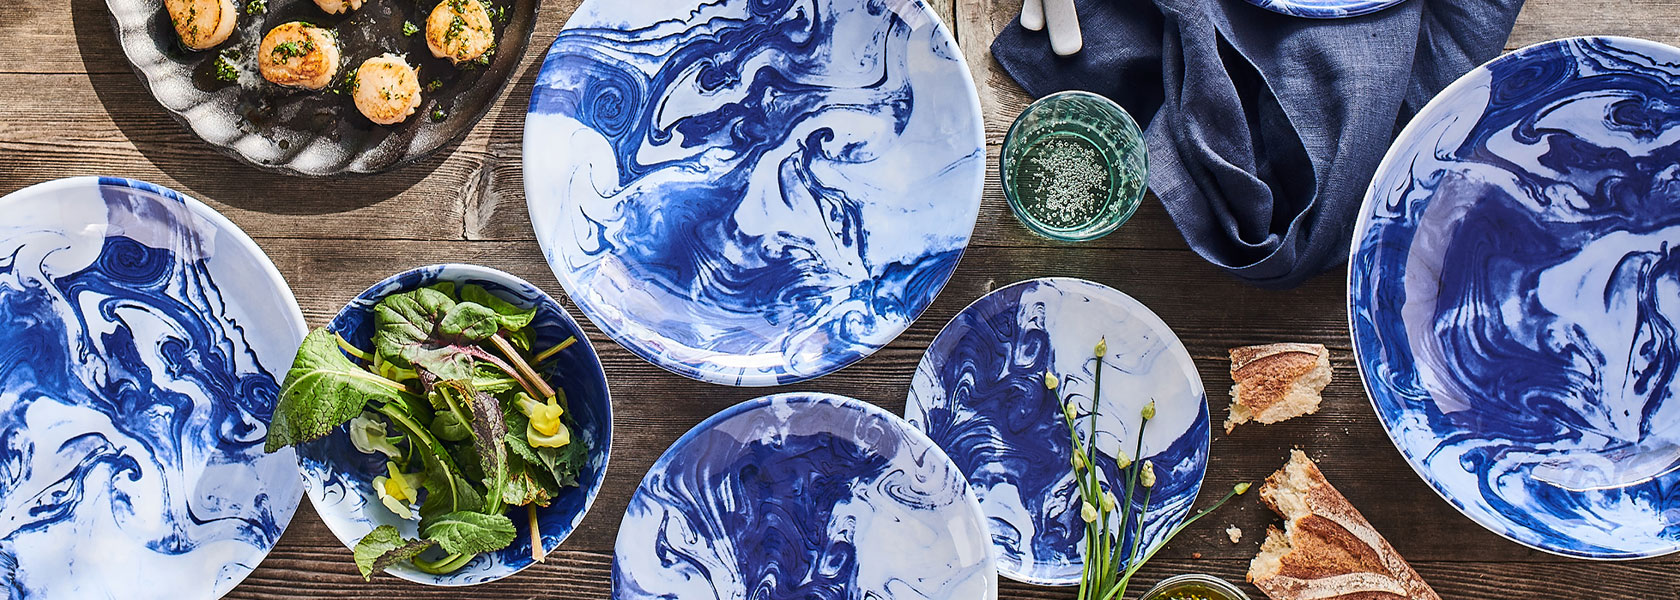 Oceana outdoor dinnerware on wooden table